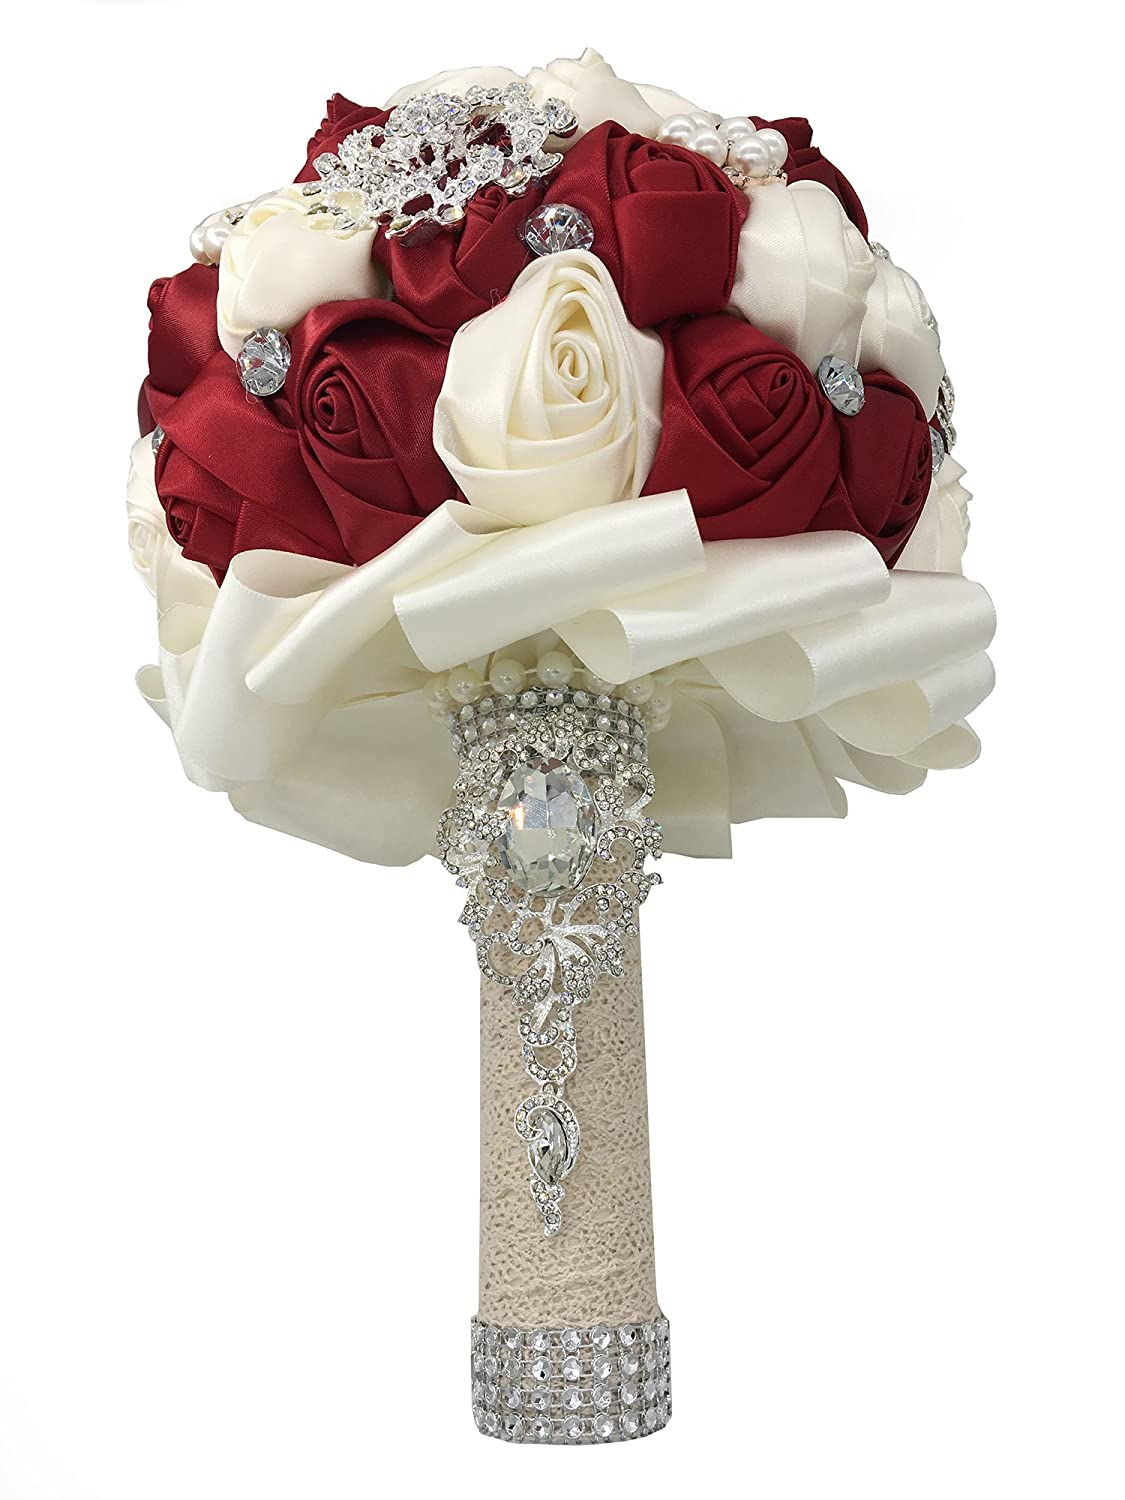 (205 PK) Jackcsale Romantic Wedding Bride Holding Bouquet Roses with Diamond Pearl Ribbon Valentine's Day Bouquet Confession (D453 Wine red+Ivory) B01JFPKNRA 205 PK 205 PK